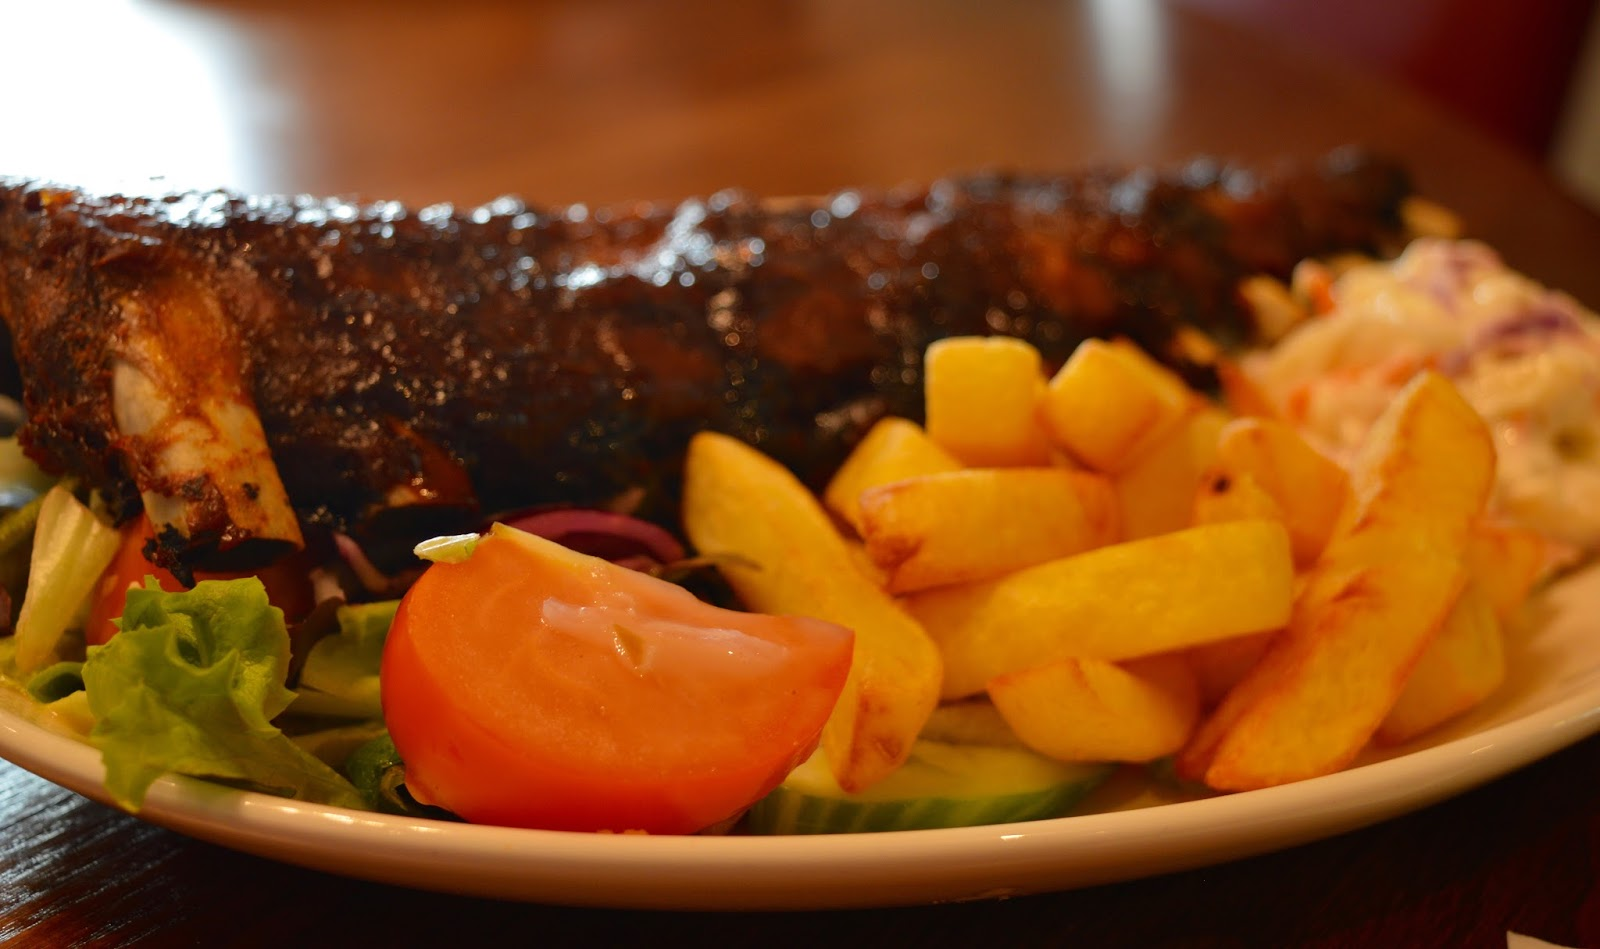 Derwent Crossing Brewers Fayre near intu Metrocentre | Play Area & Children's Menu Review - BBQ ribs